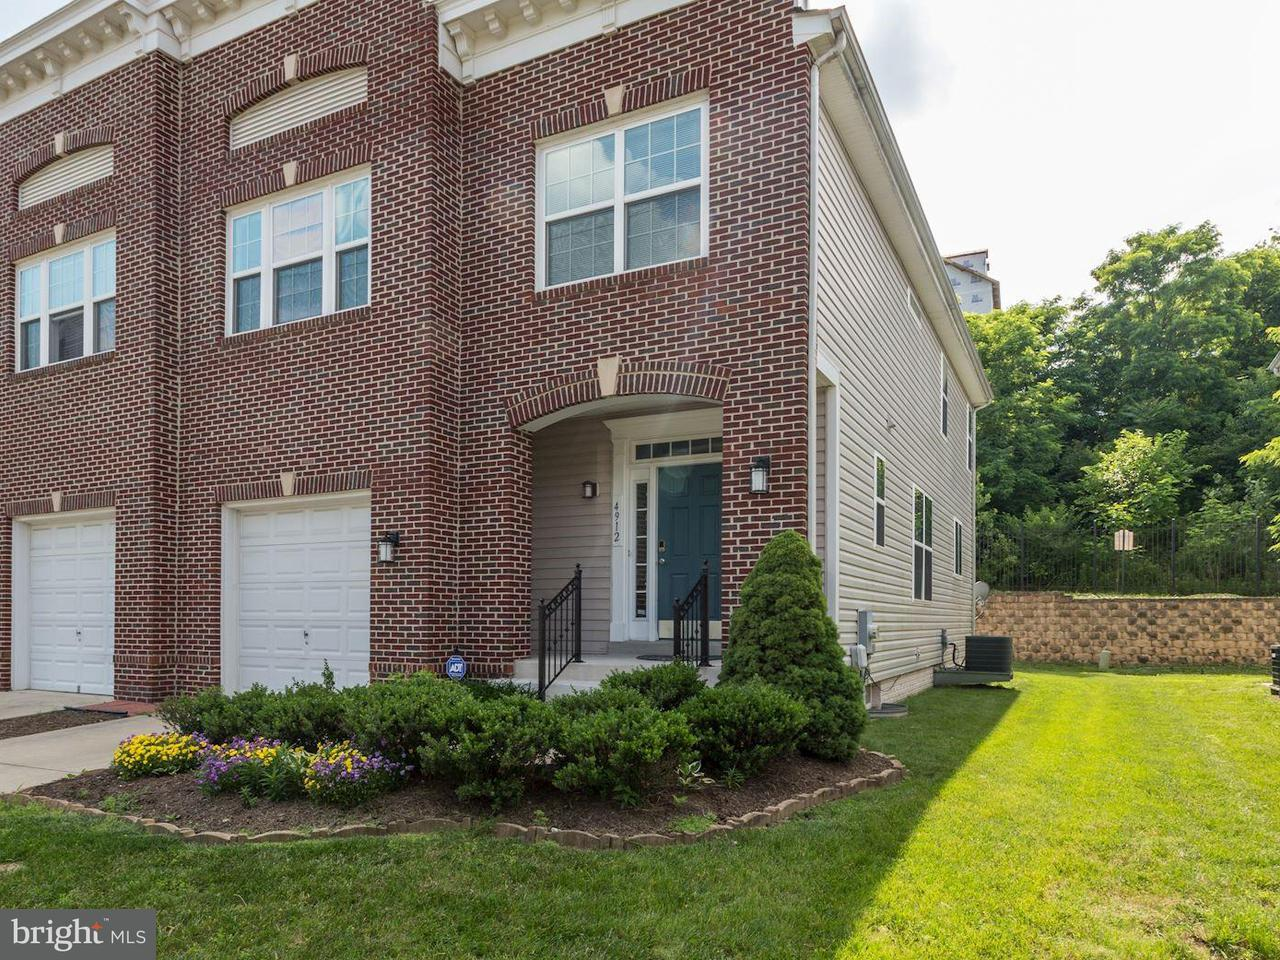 Single Family for Sale at 4912 7th St NE Washington, District Of Columbia 20017 United States